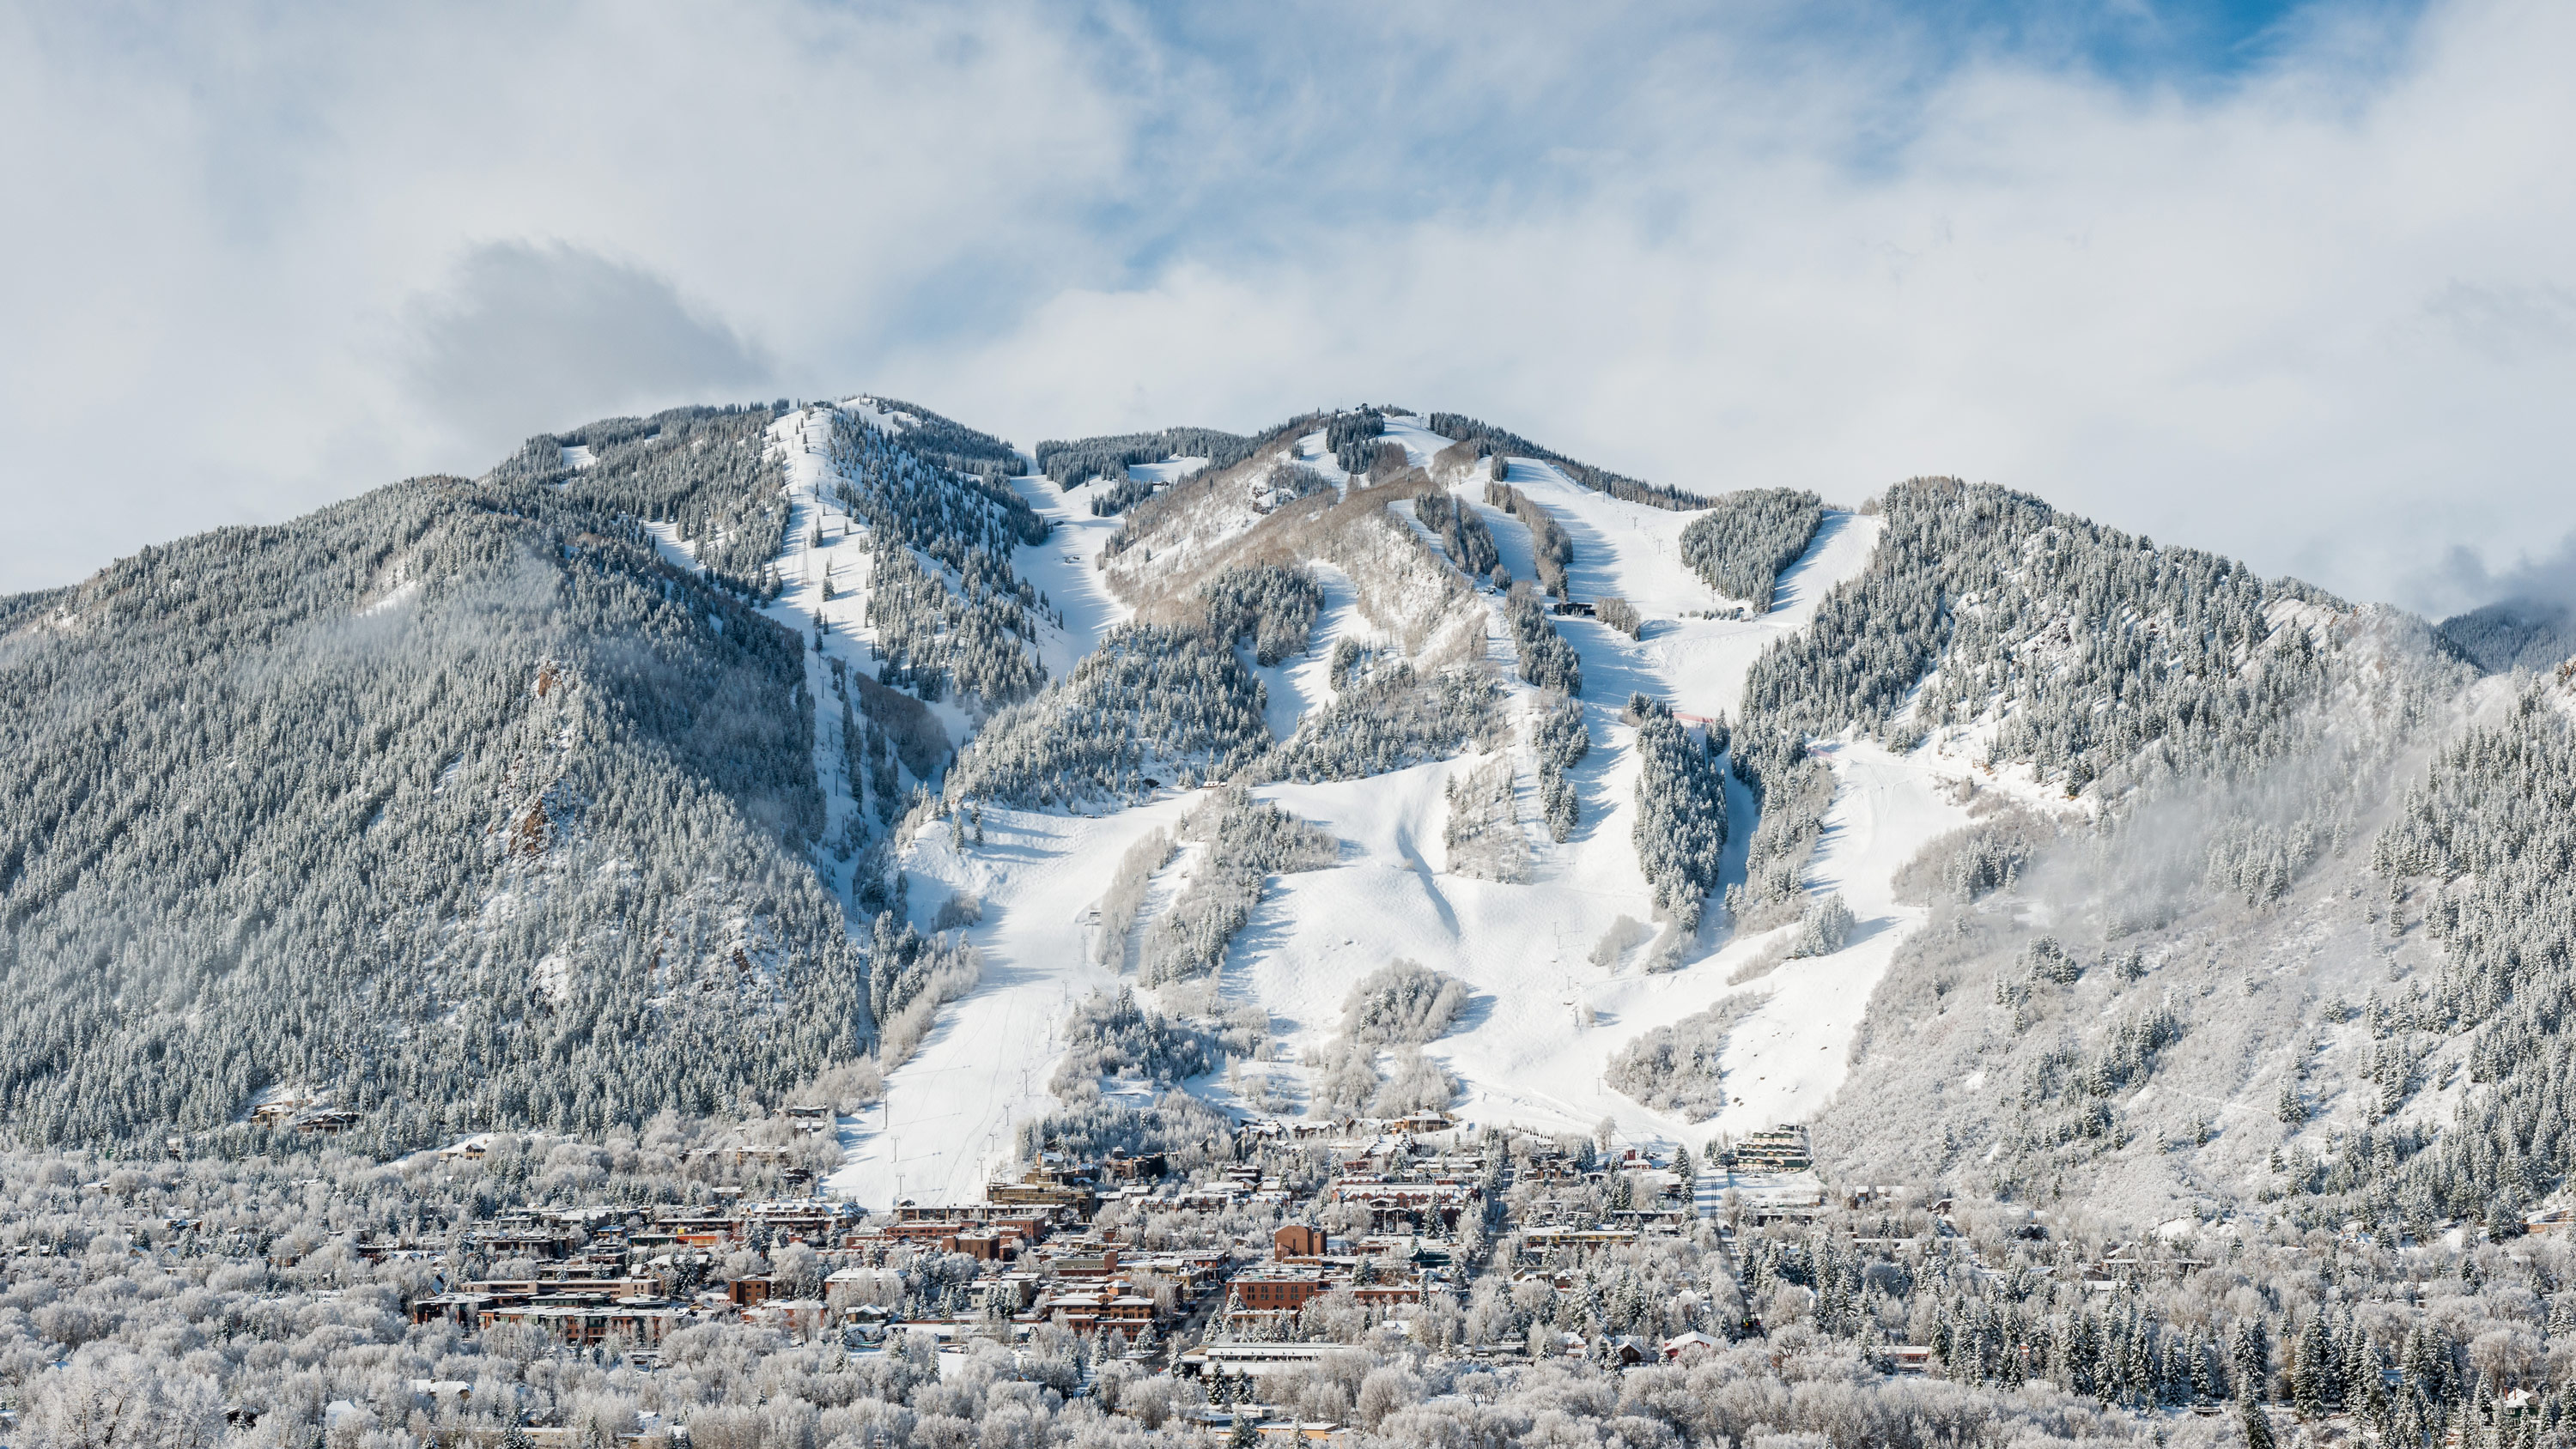 Aspen for non-skiers: Everything else you can do   CNN Travel